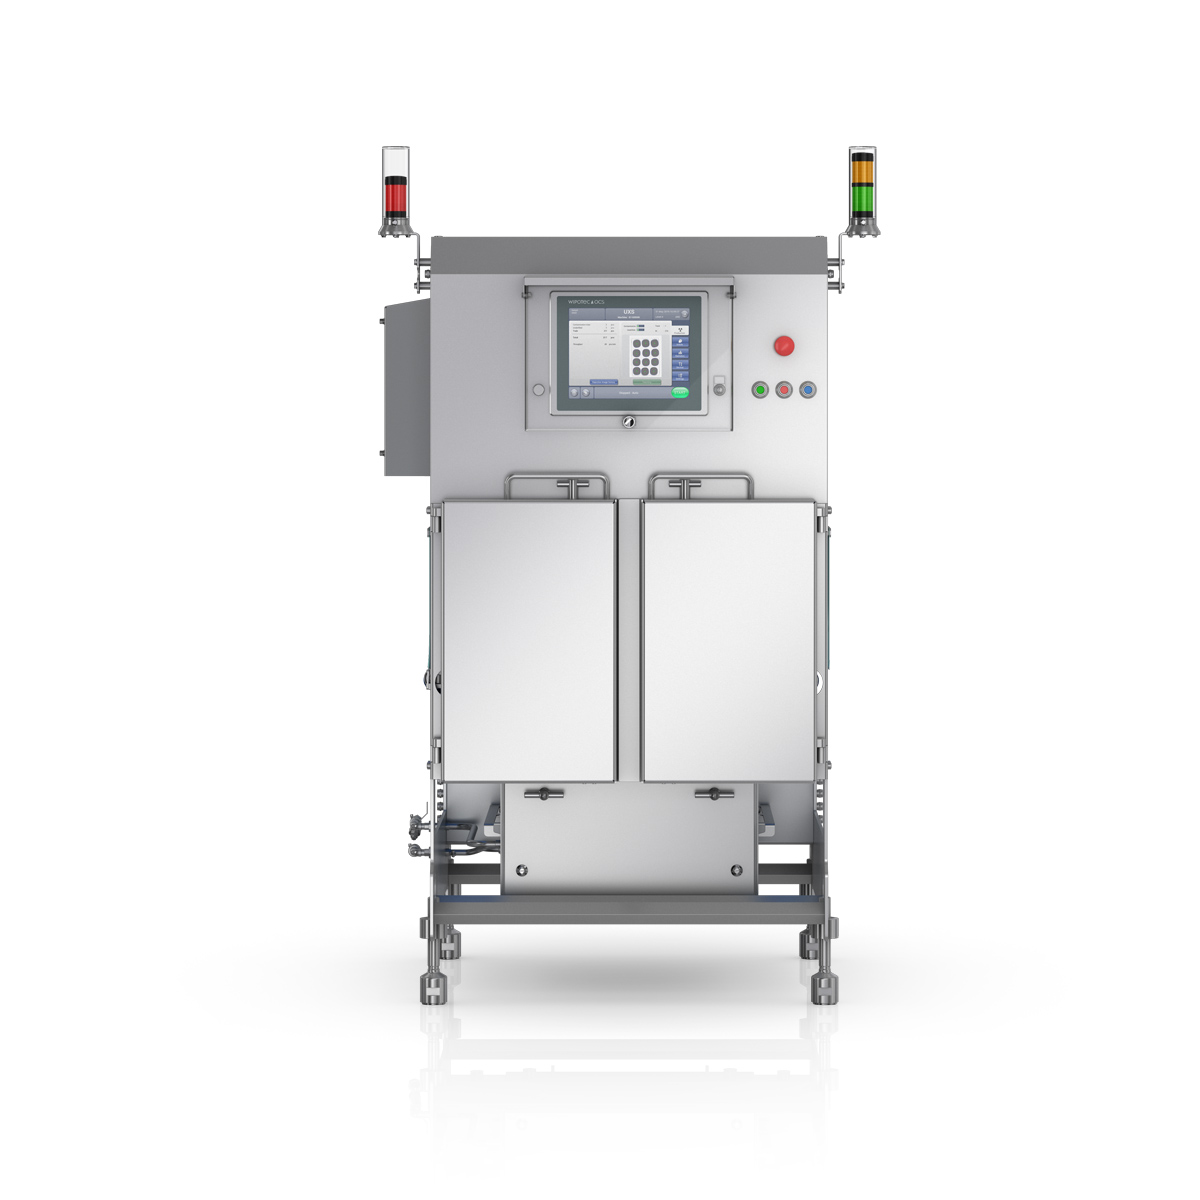 X-ray inspection system checkweigher SC-WD front view